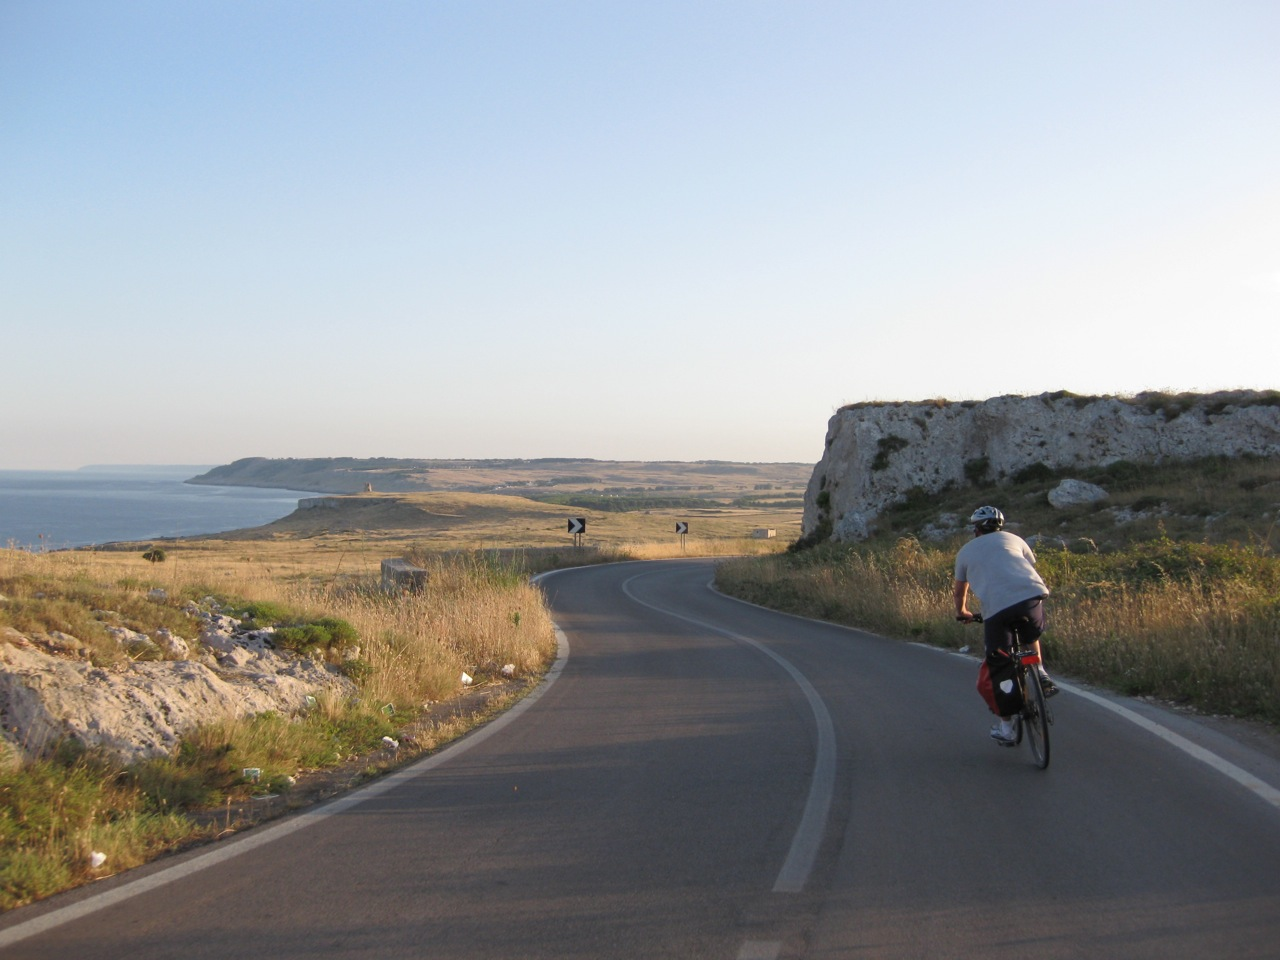 Man cycling in capo of ontranto